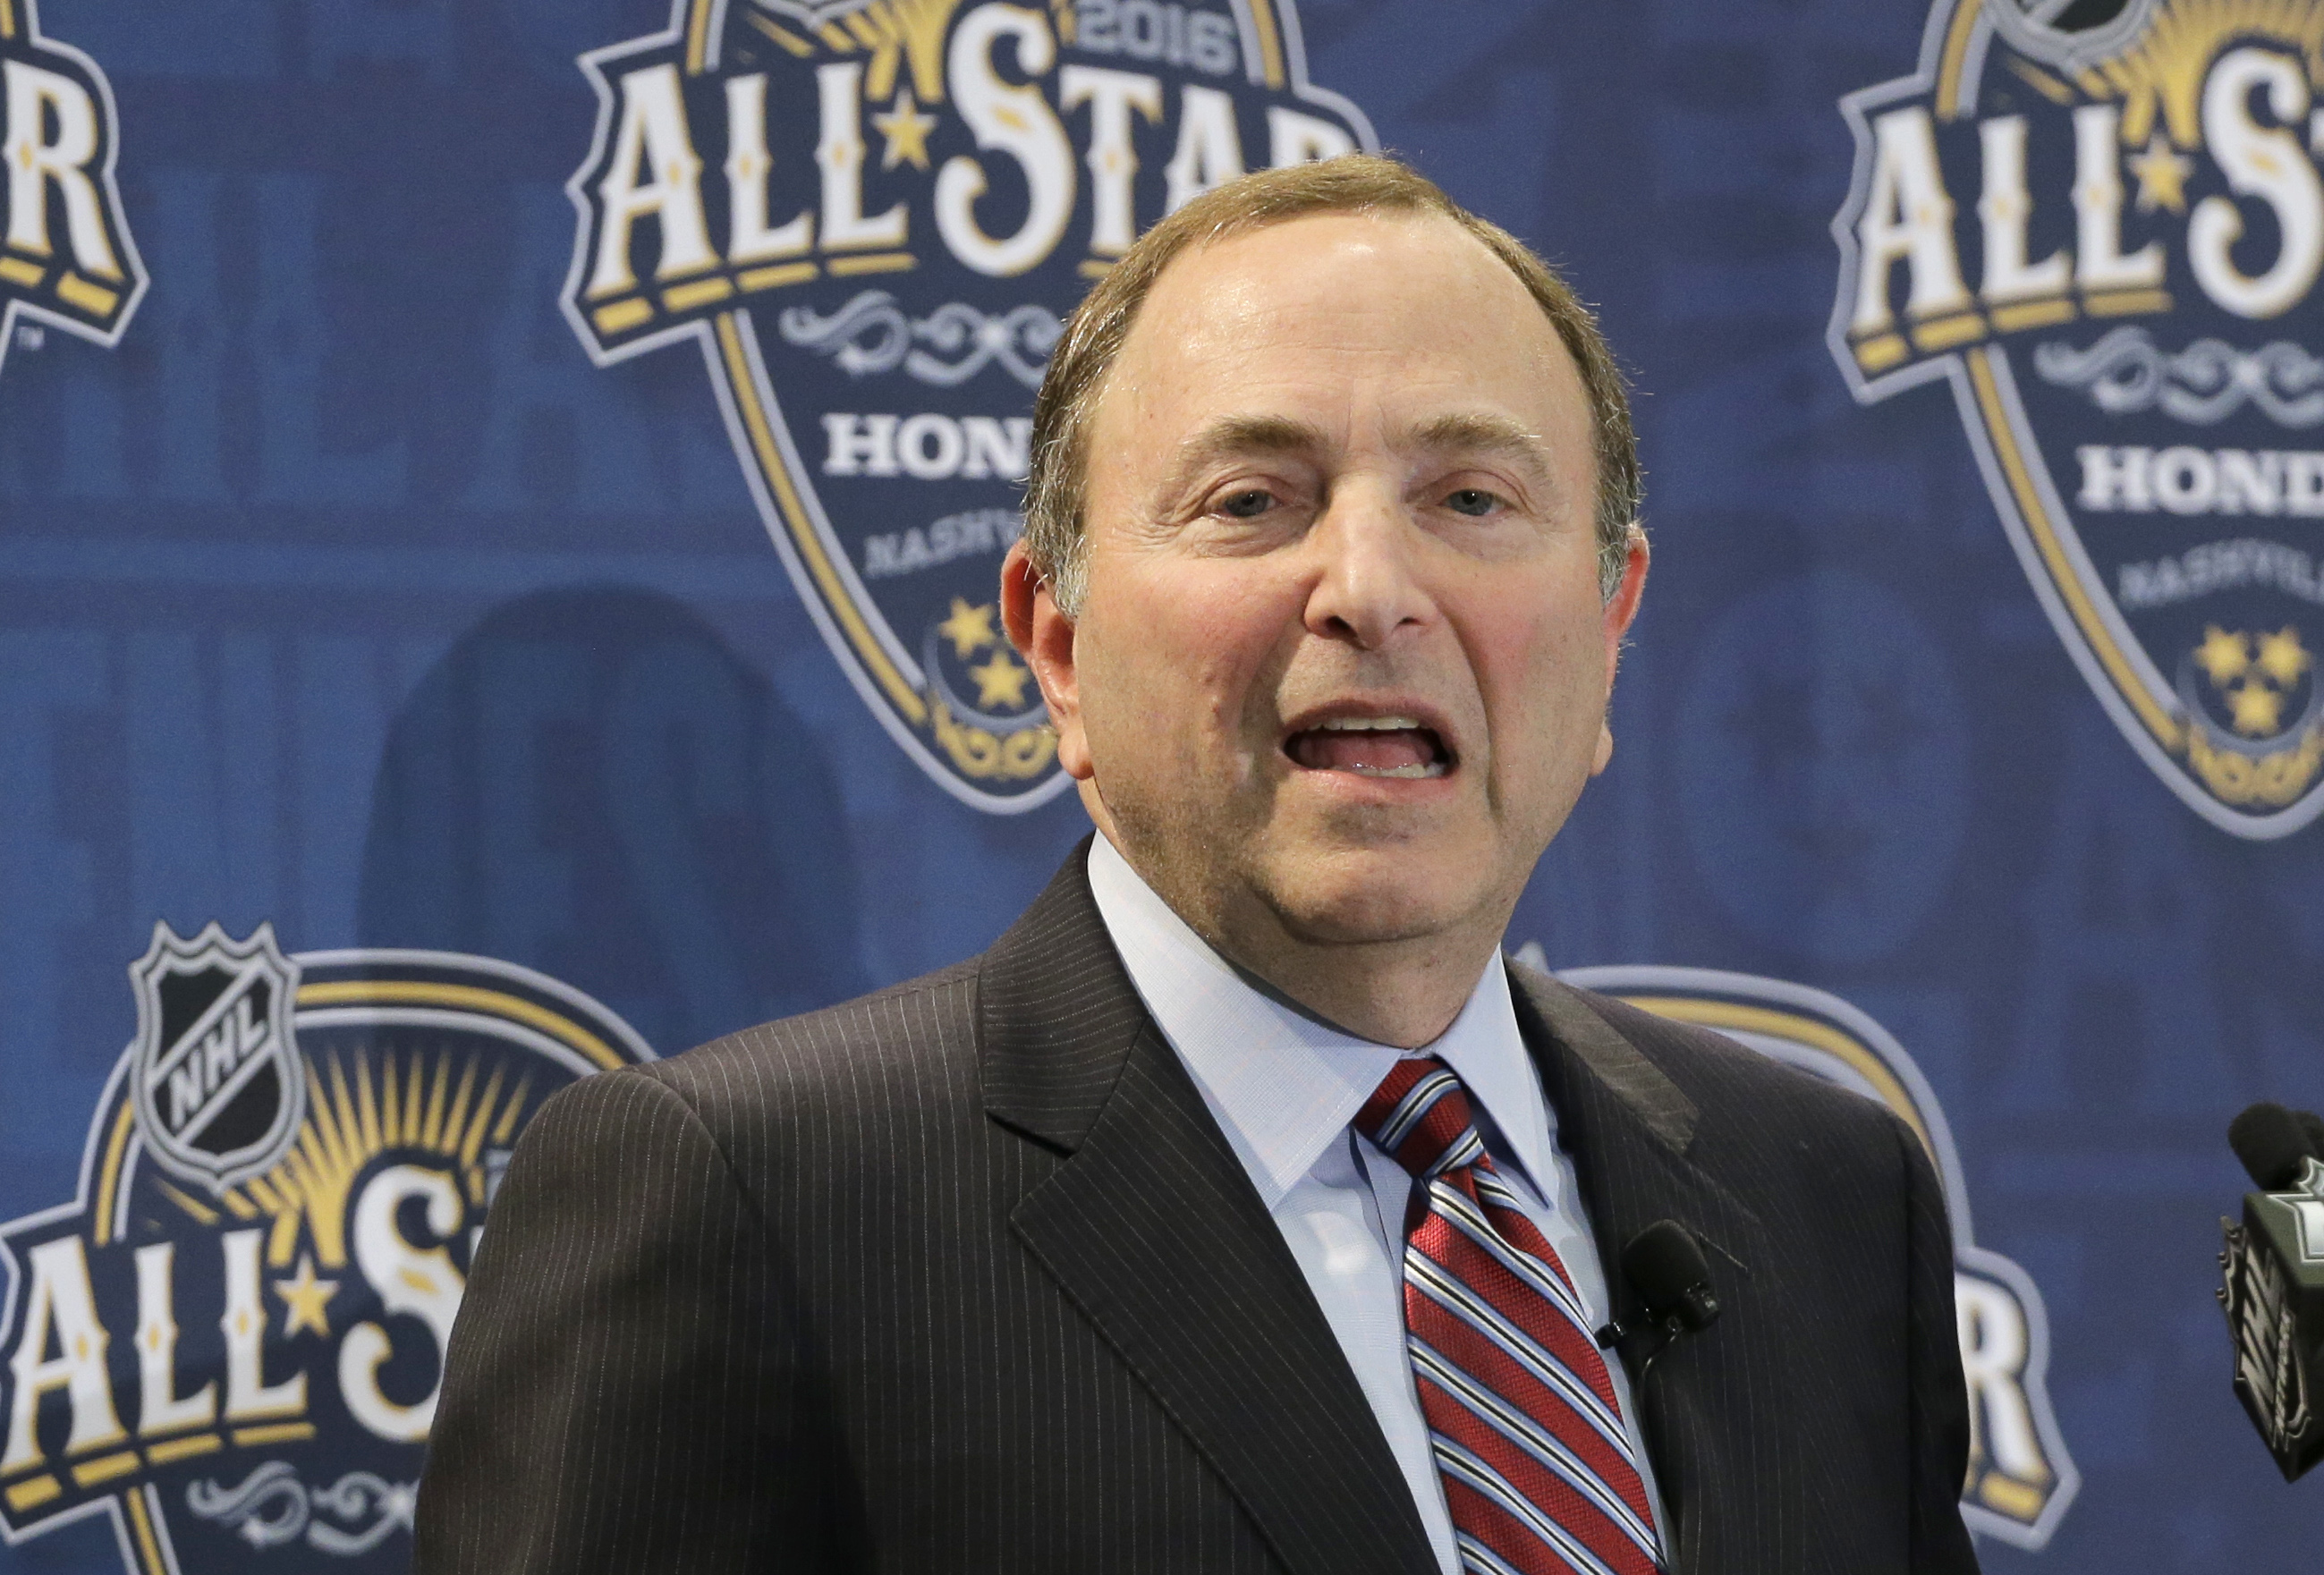 FILE - In this Jan. 31, 2016, file photo, NHL commissioner Gary Bettman speaks during a news conference before the NHL hockey All-Star game skills competition in Nashville, Tenn. Days after watching Philadelphia fans throw light-up wristbands onto the ice